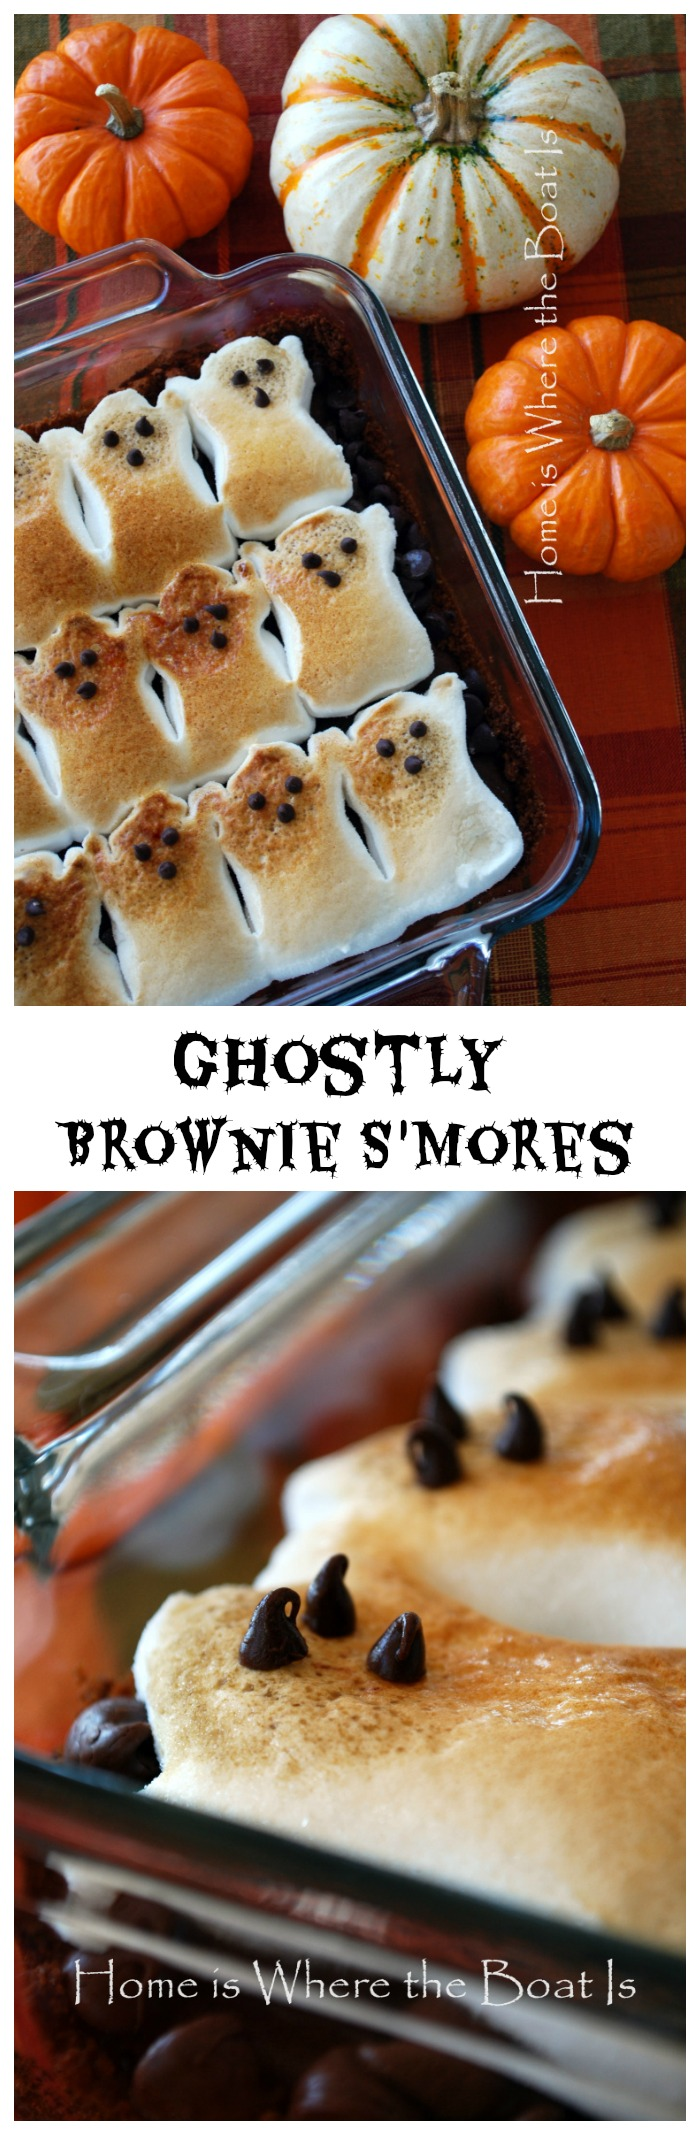 ghostly-peeps-brownie-smores